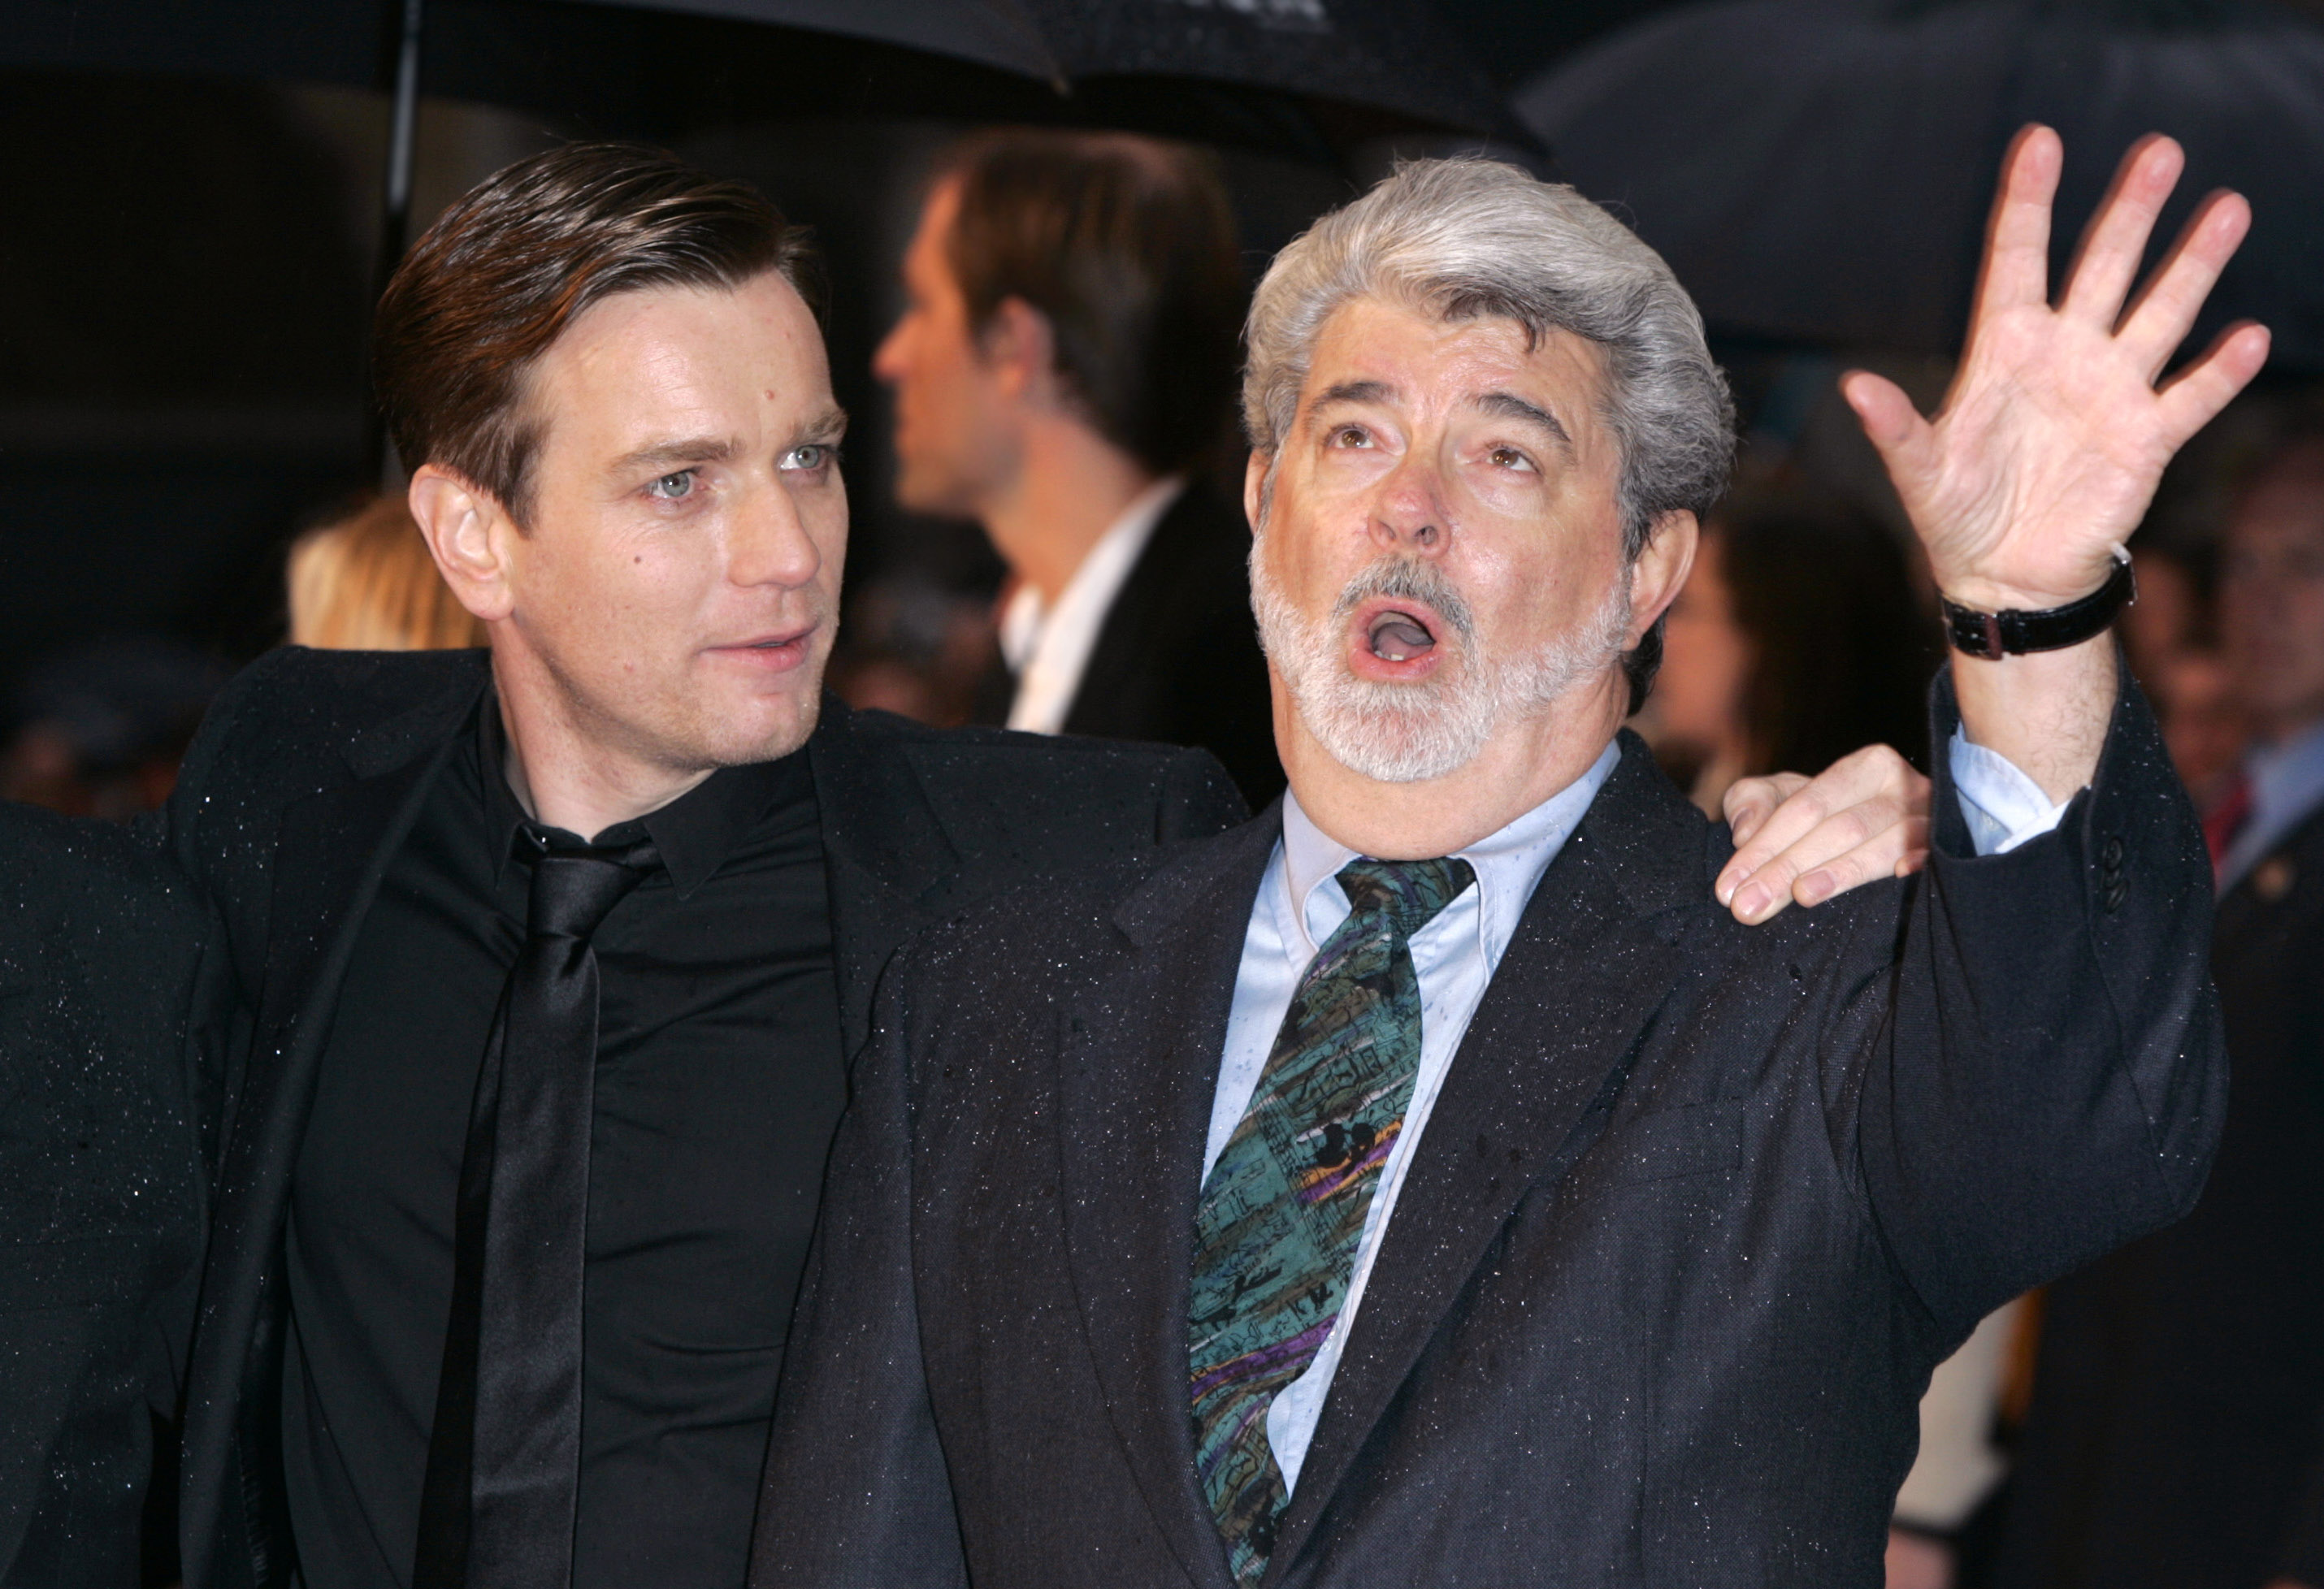 Ewan McGregor and George Lucas attend The Star Wars: Revenge Of The Sith UK  premiere in London.